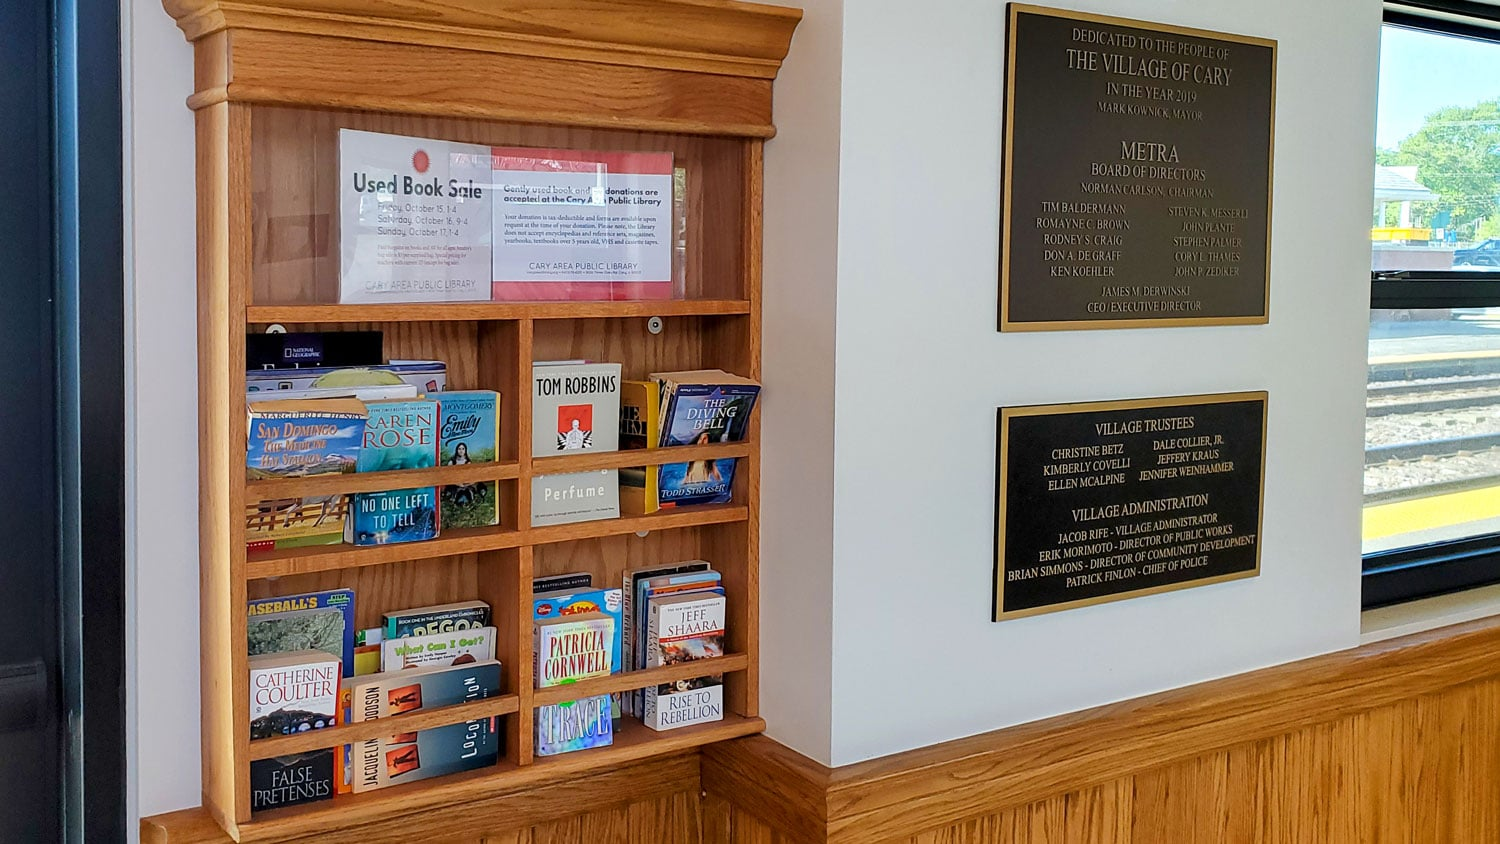 Various reading materials and commemorative plaques in the Cary station.